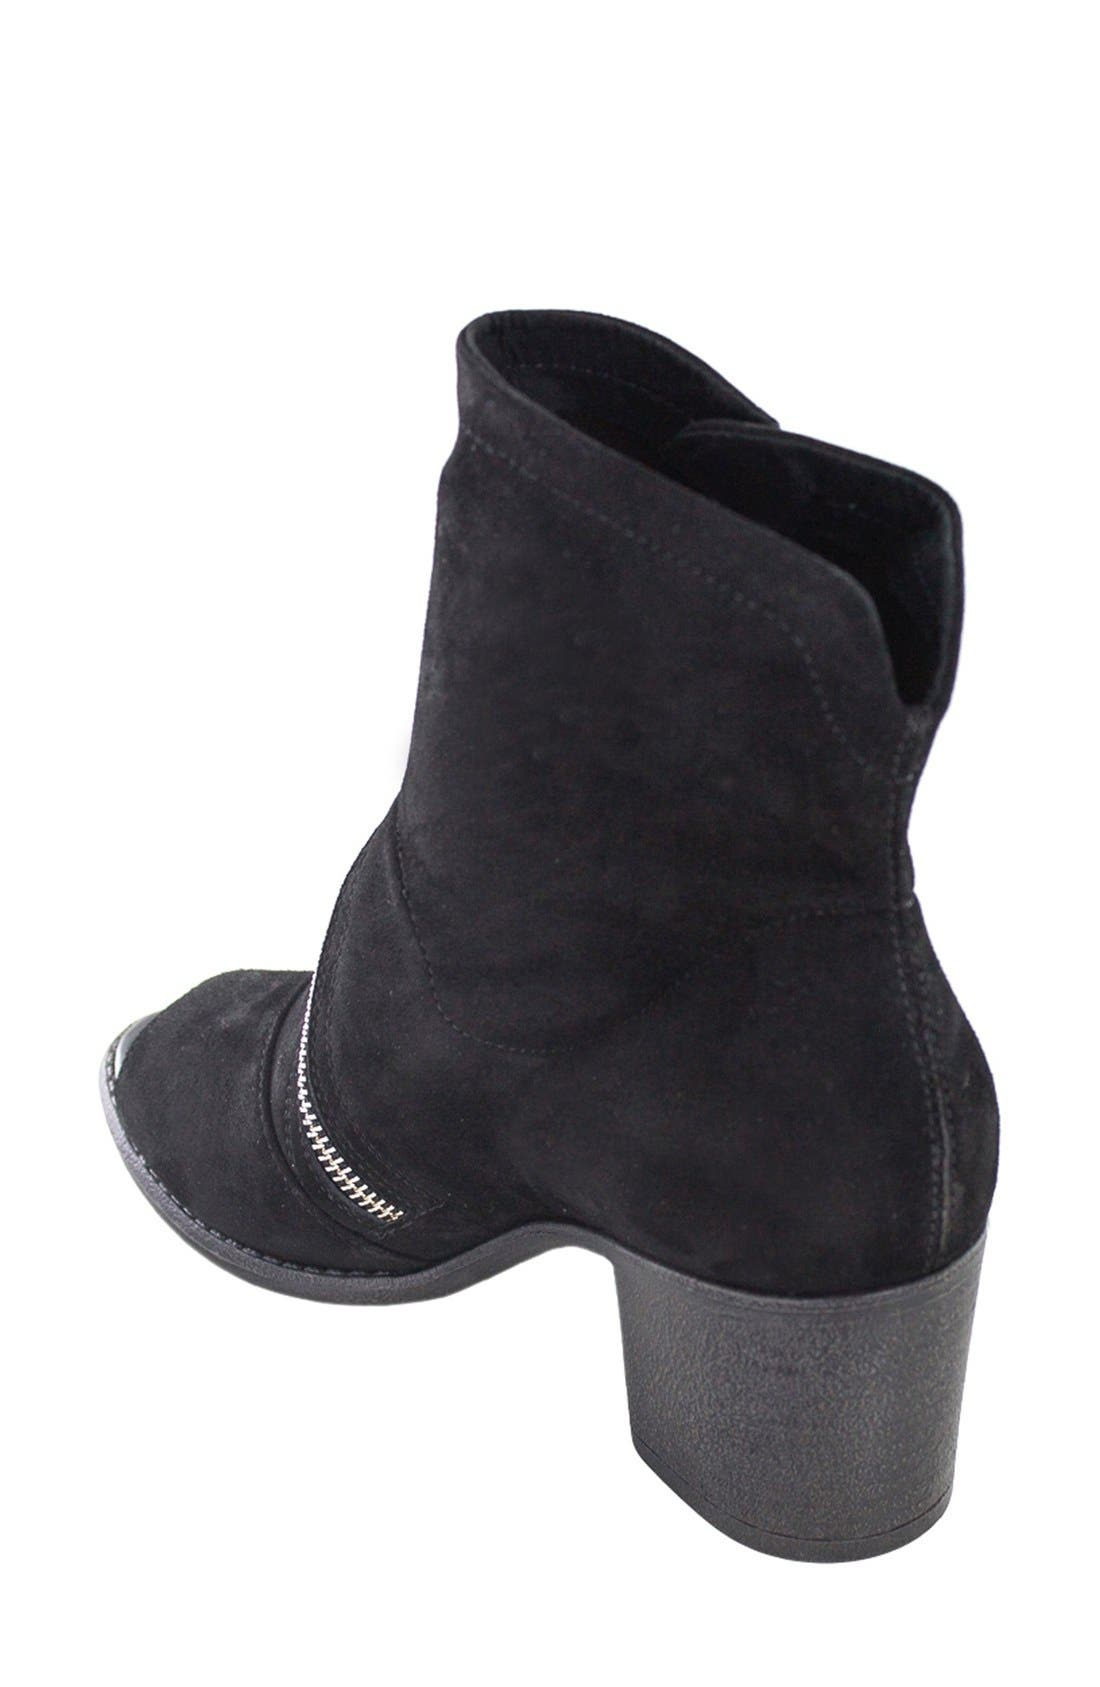 Alternate Image 2  - Summit 'Fantasia' Open Toe Bootie (Women)